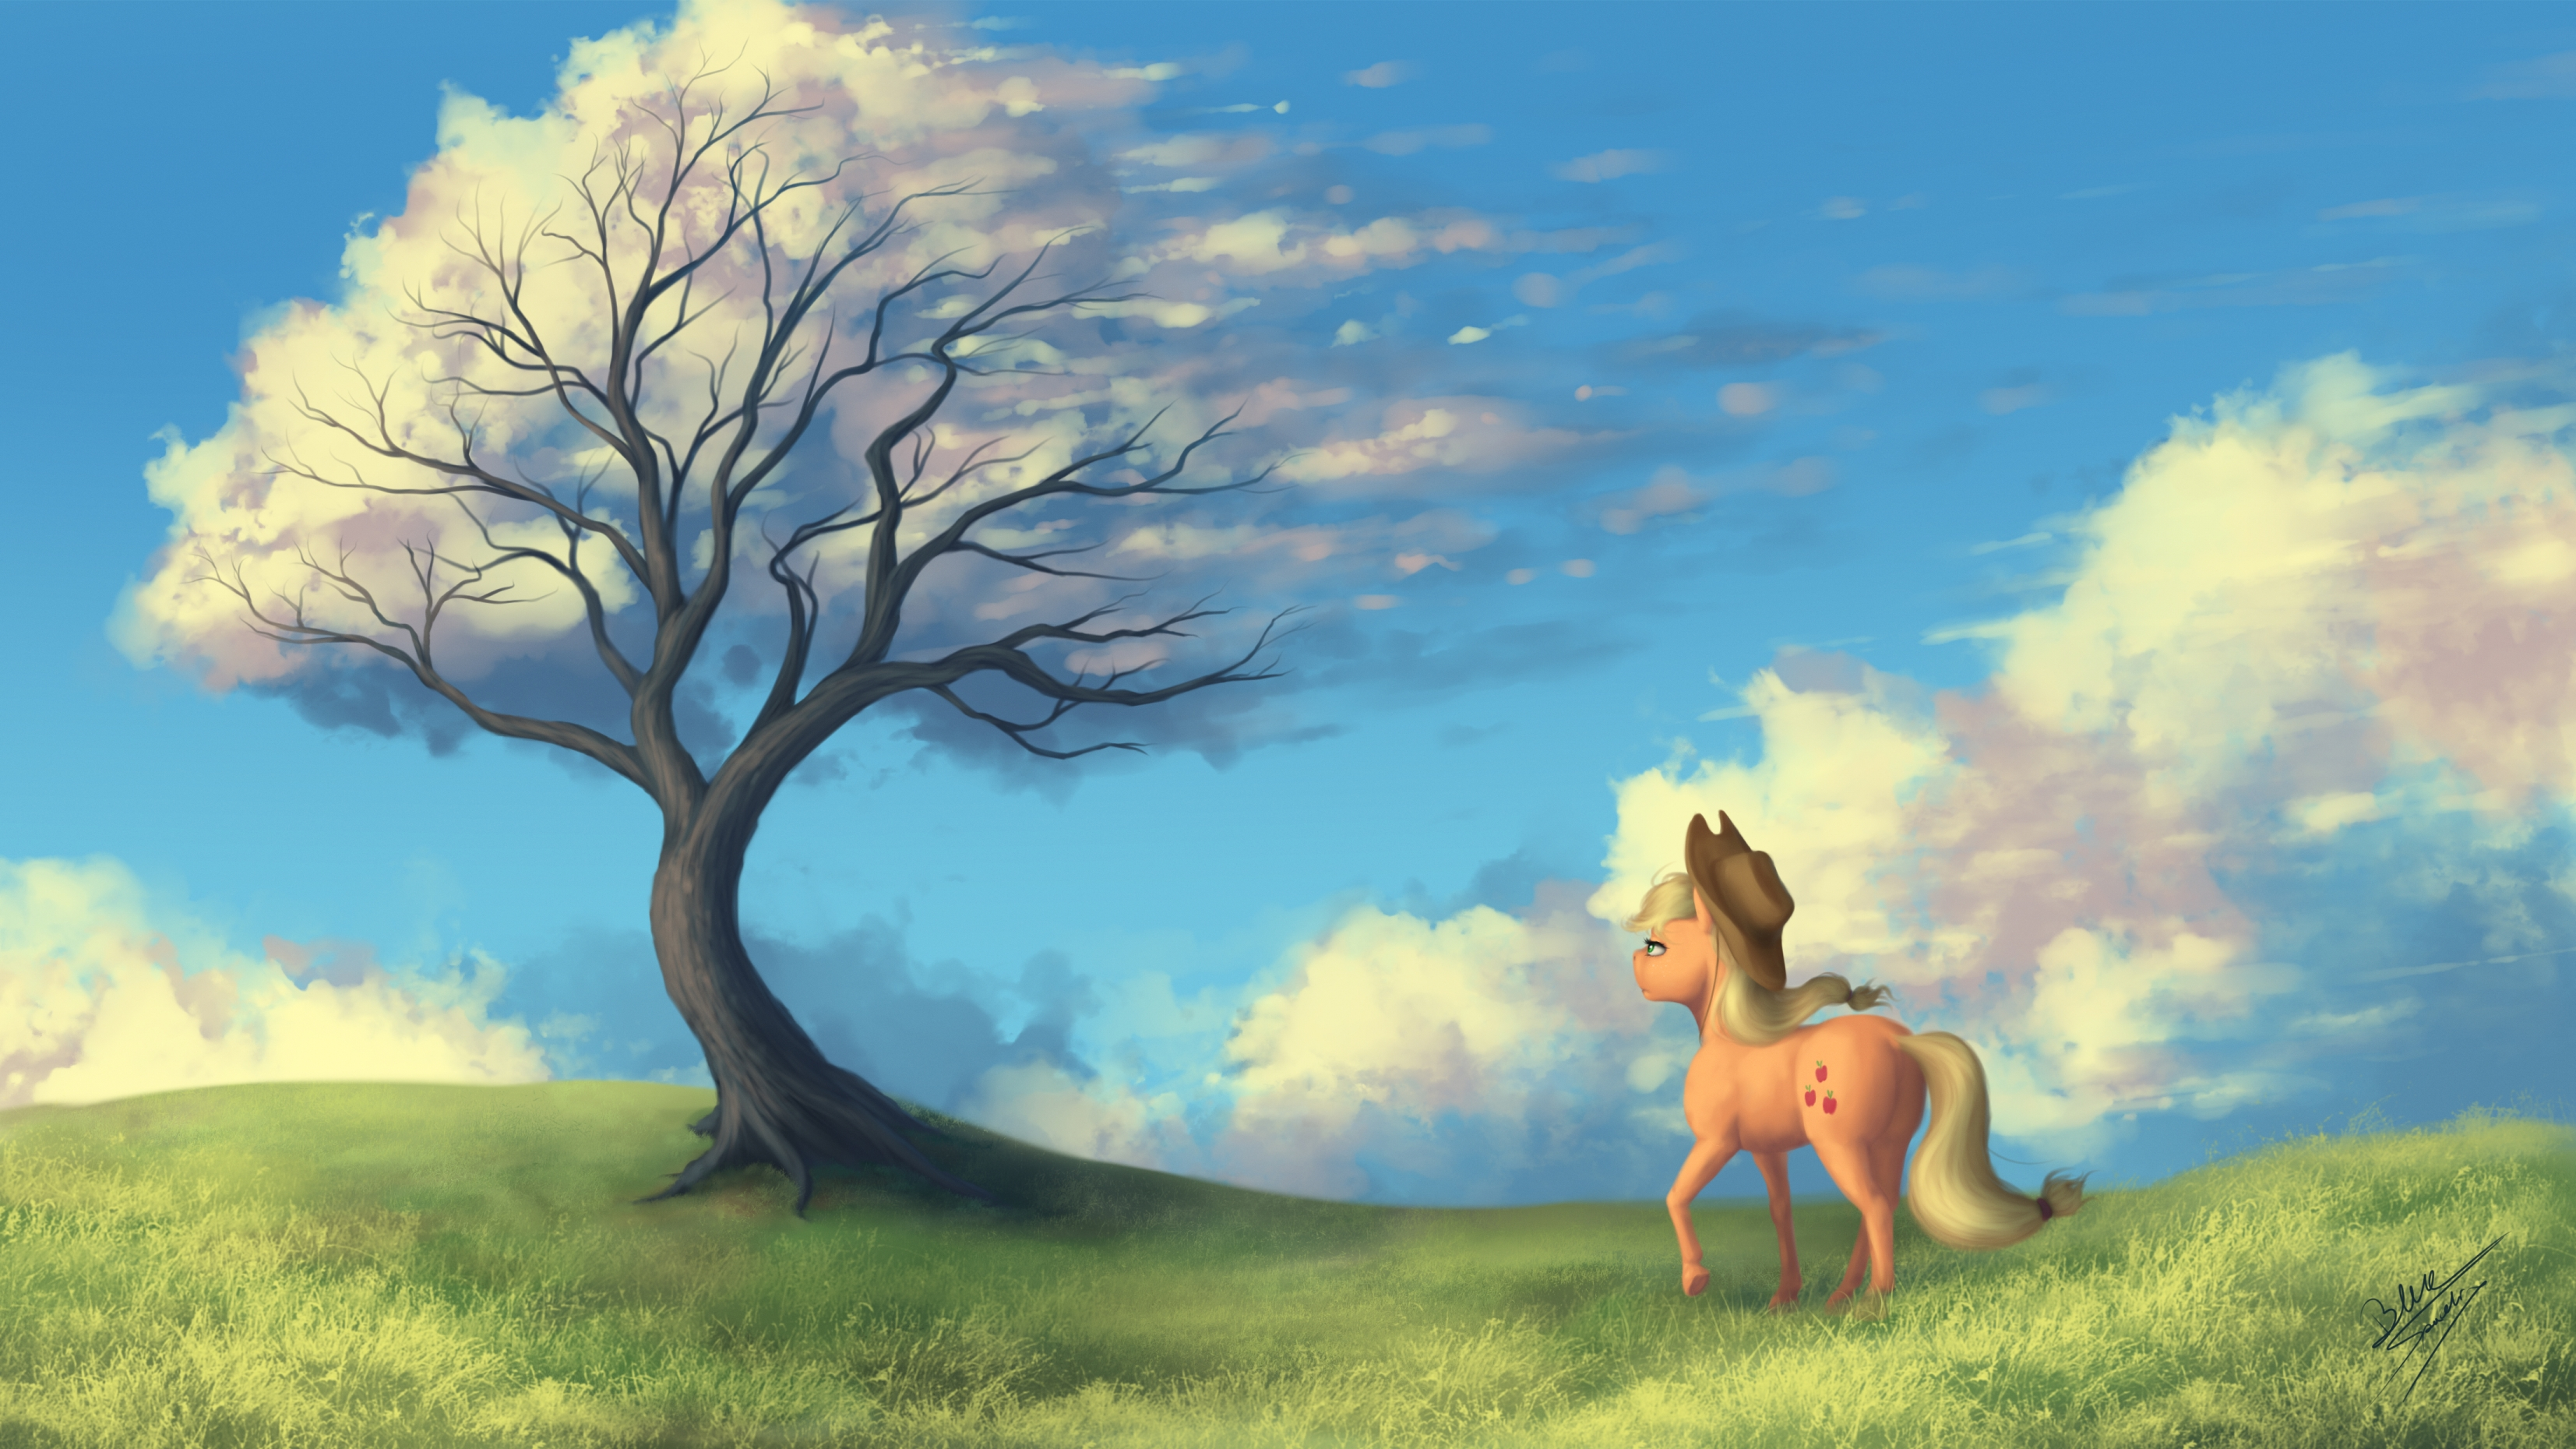 e926 2017 absurd_res applejack_(mlp) blonde_hair bluespaceling cutie_mark detailed_background digital_media_(artwork) equine friendship_is_magic grass hair hat hi_res hooves horse mammal my_little_pony outside pony sky tree